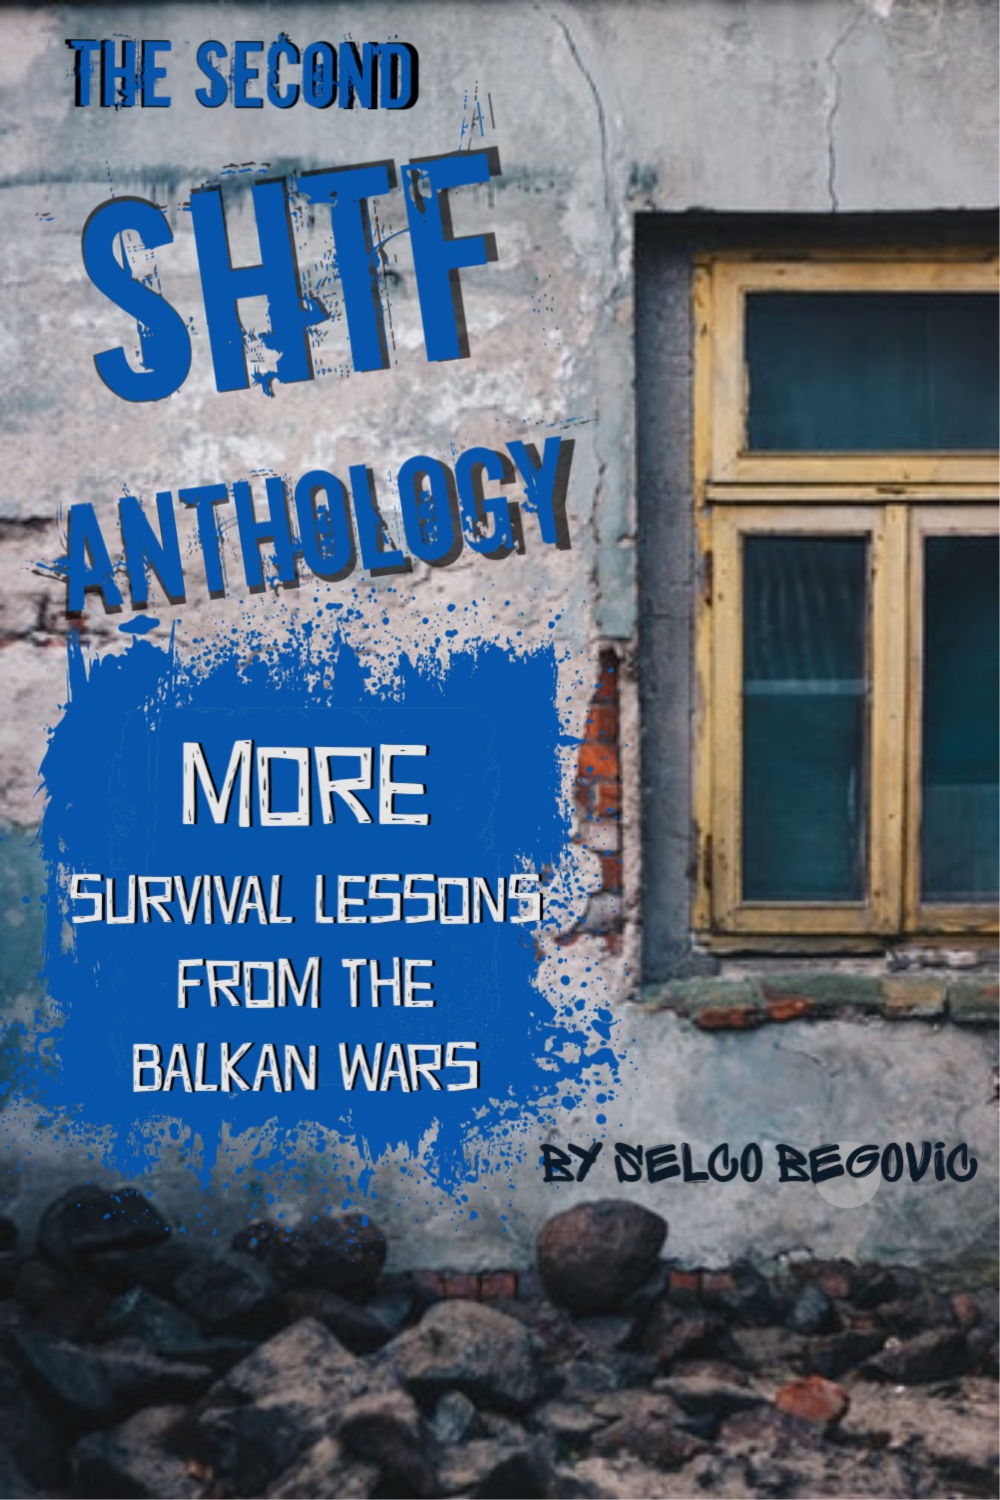 Want to get all of Selco\'s articles in one place? His second SHTF Anthology is ready for purchase! | TheOrganicPrepper.com